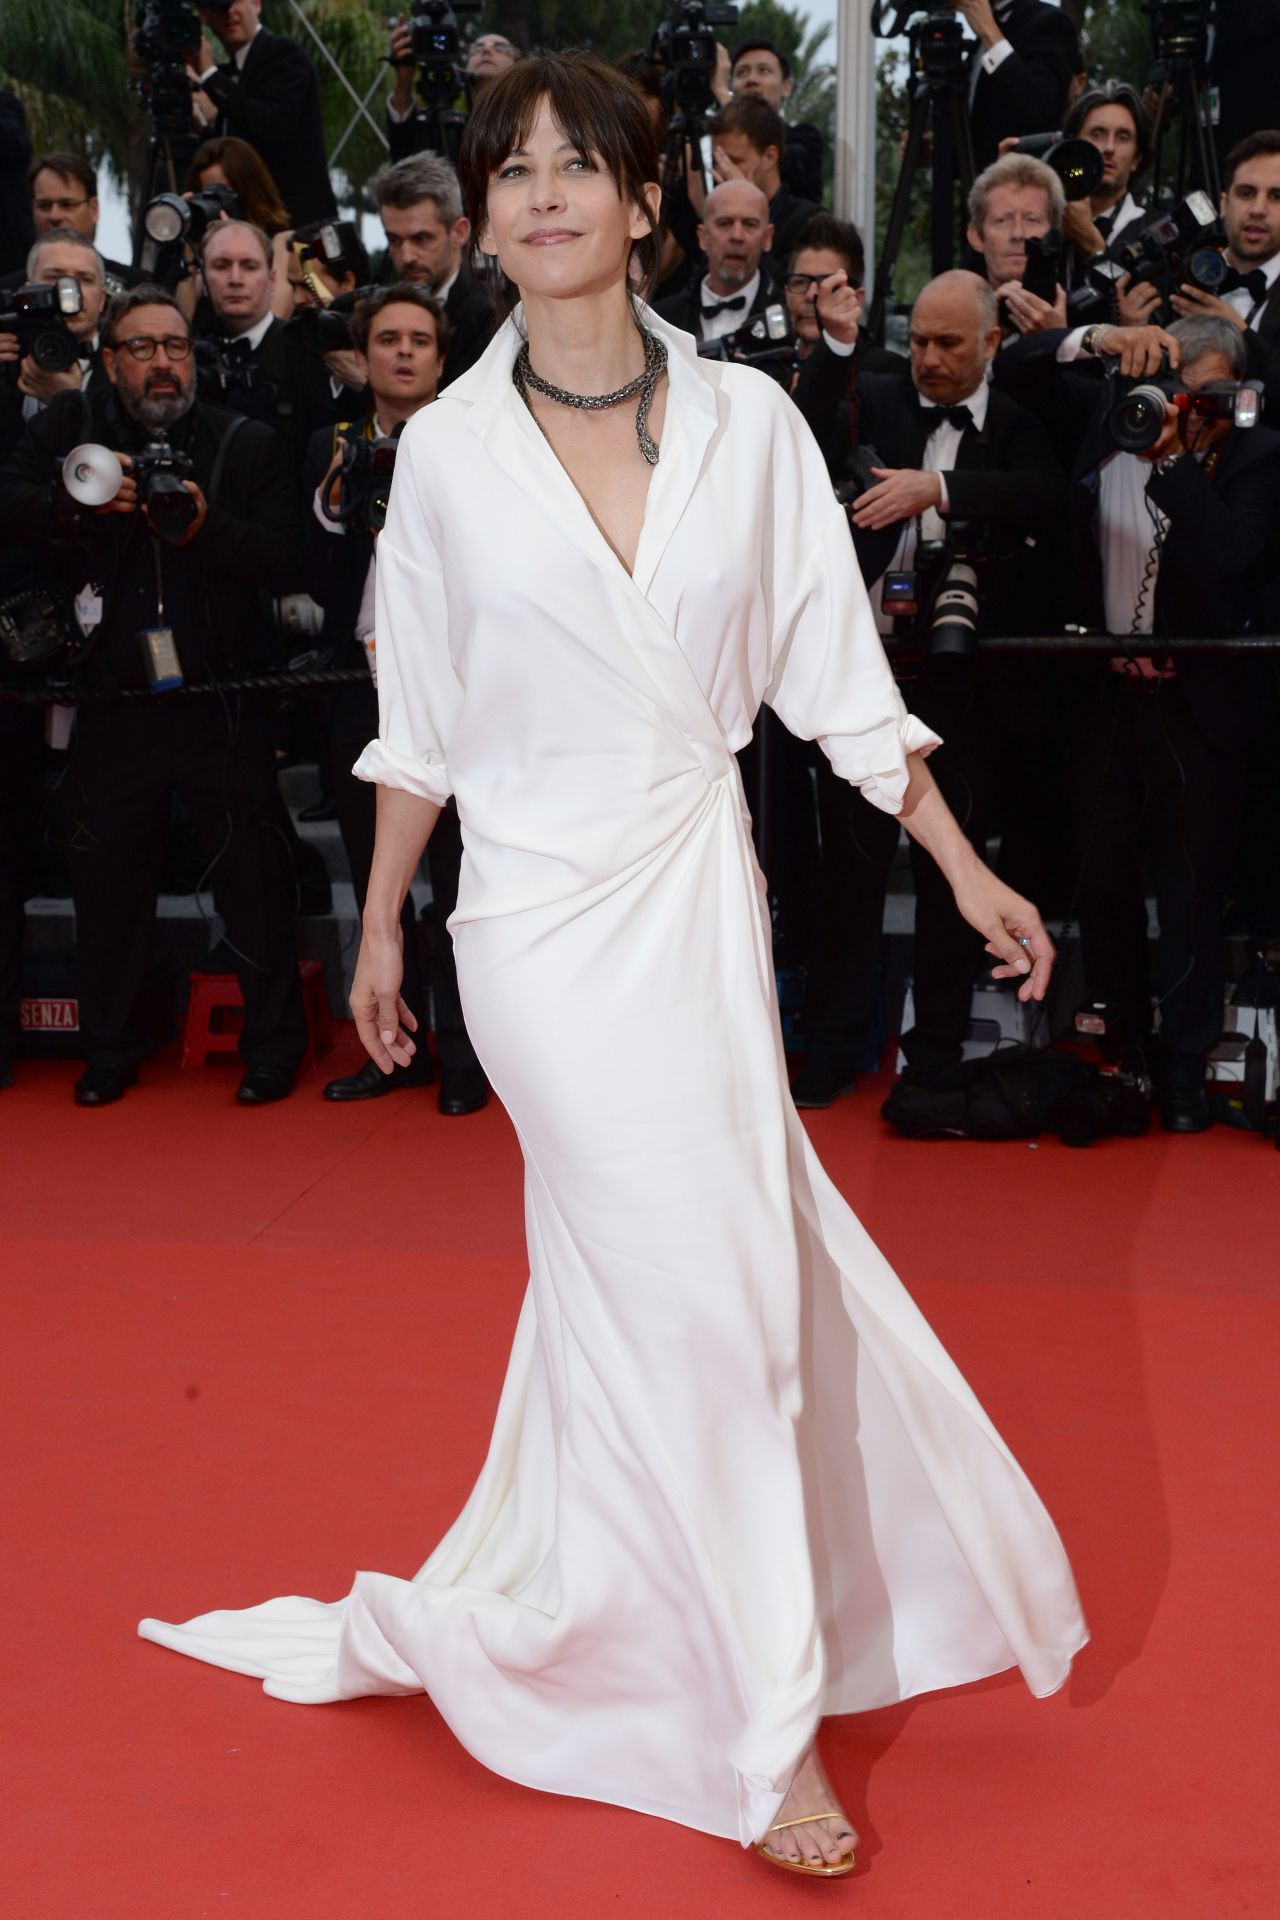 Sophie Marceau in Alexandre Vauthier Couture Gown at Mad Max: Fury Road Premiere at 2015 Cannes Film Festival